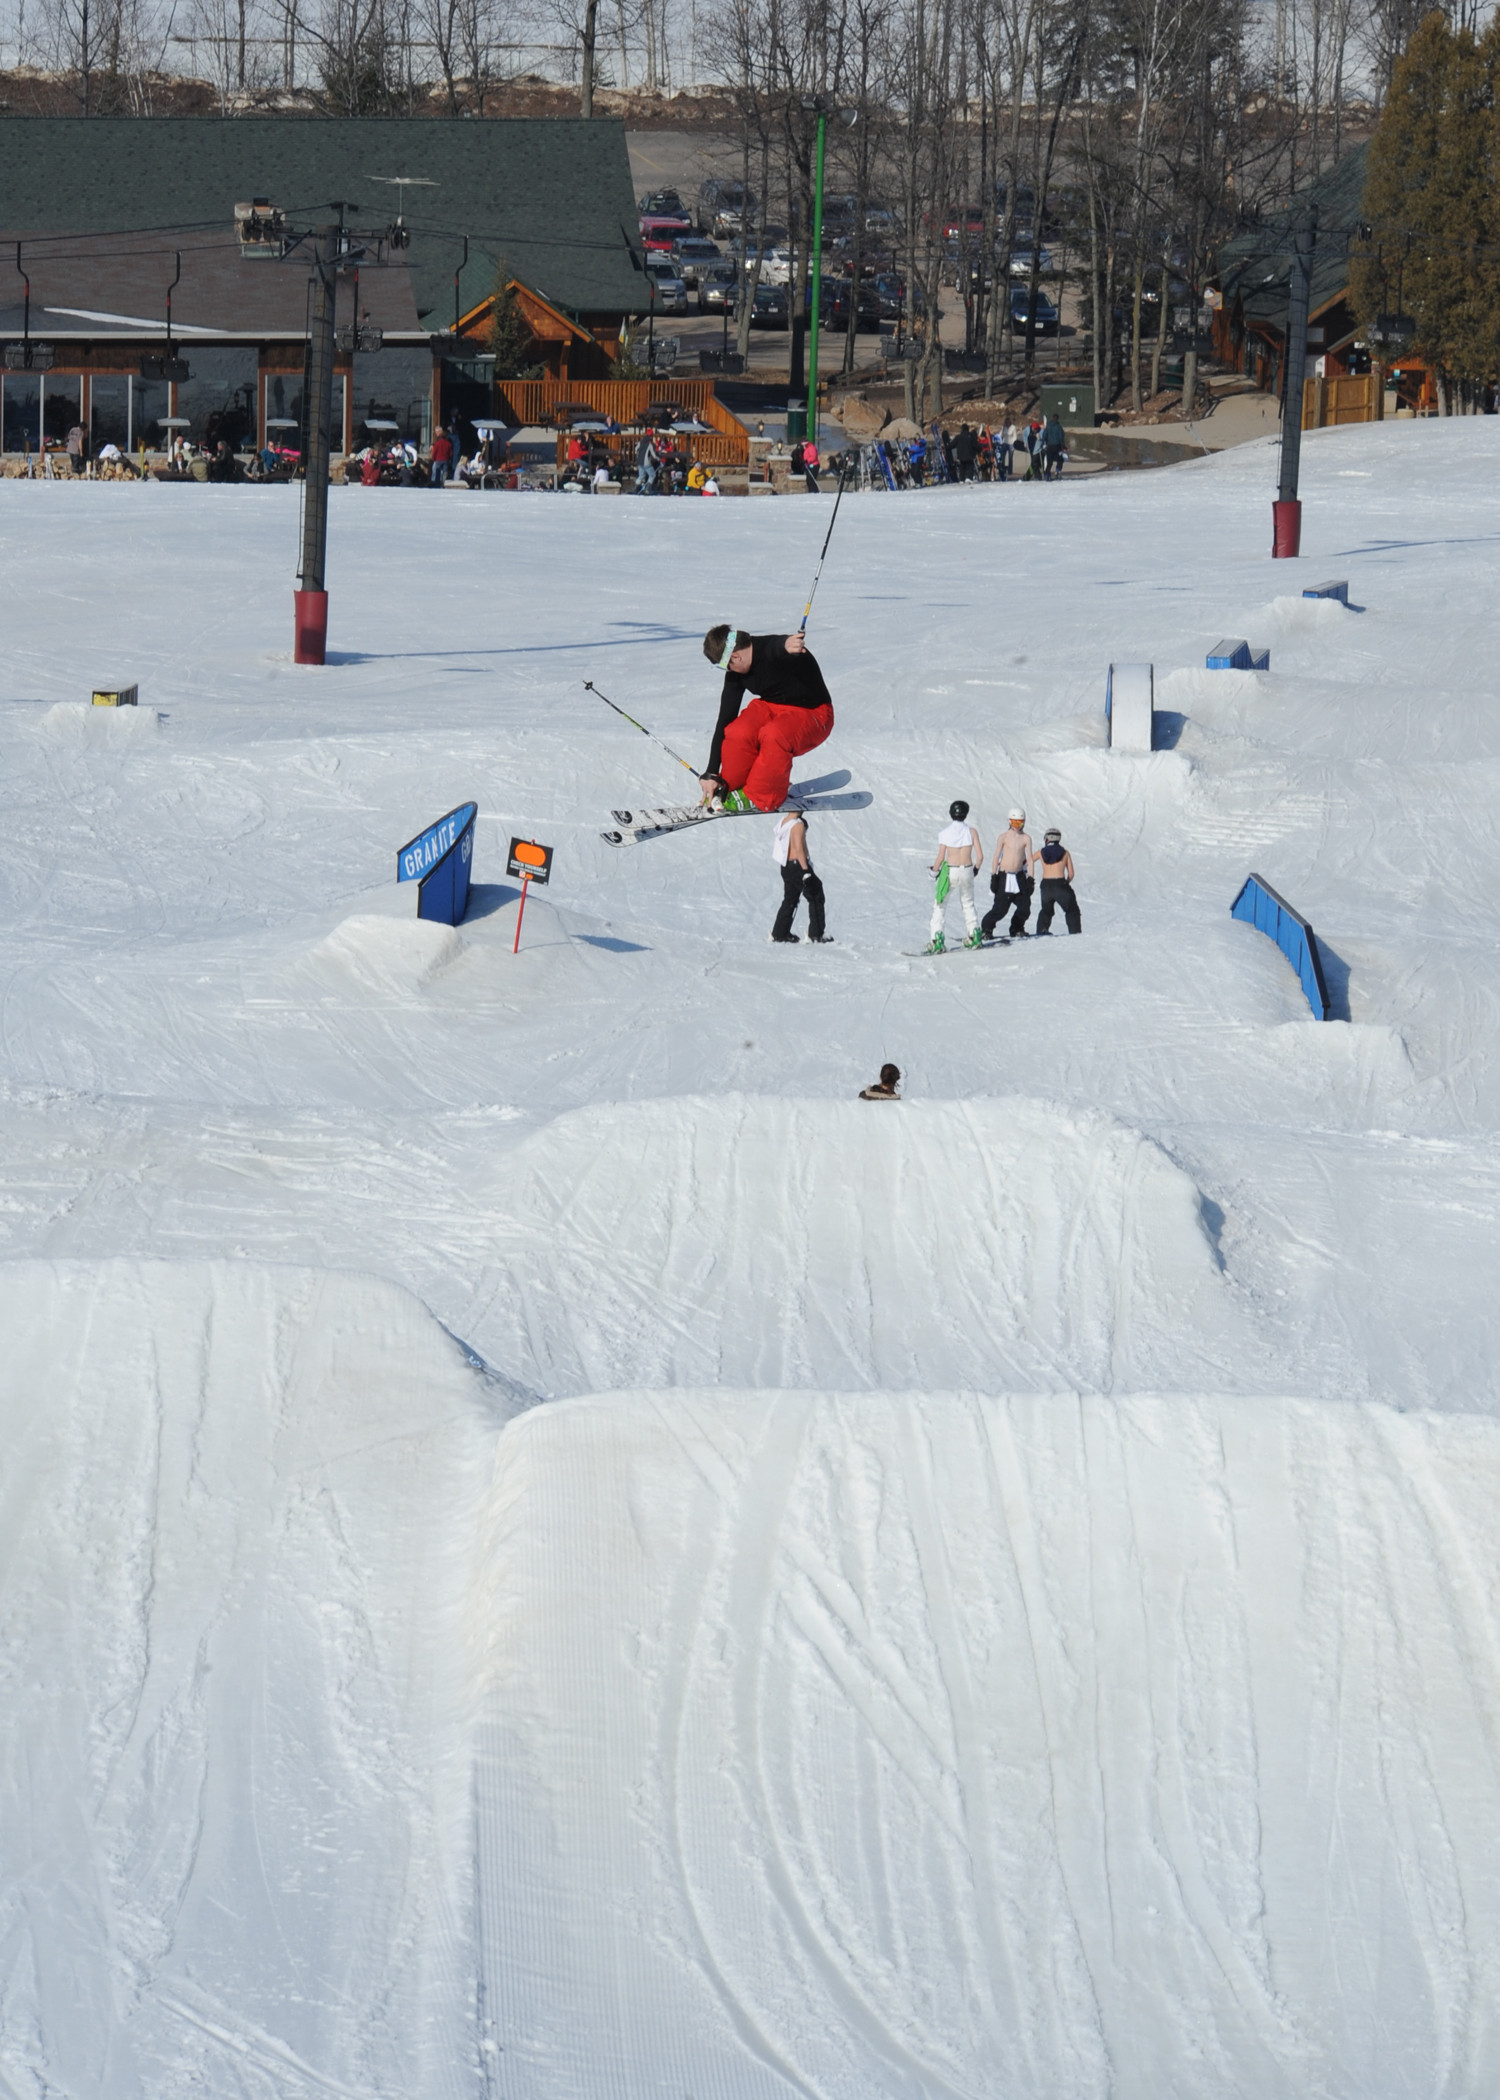 The terrain parks are great at Granite Peak Ski Area.undefined